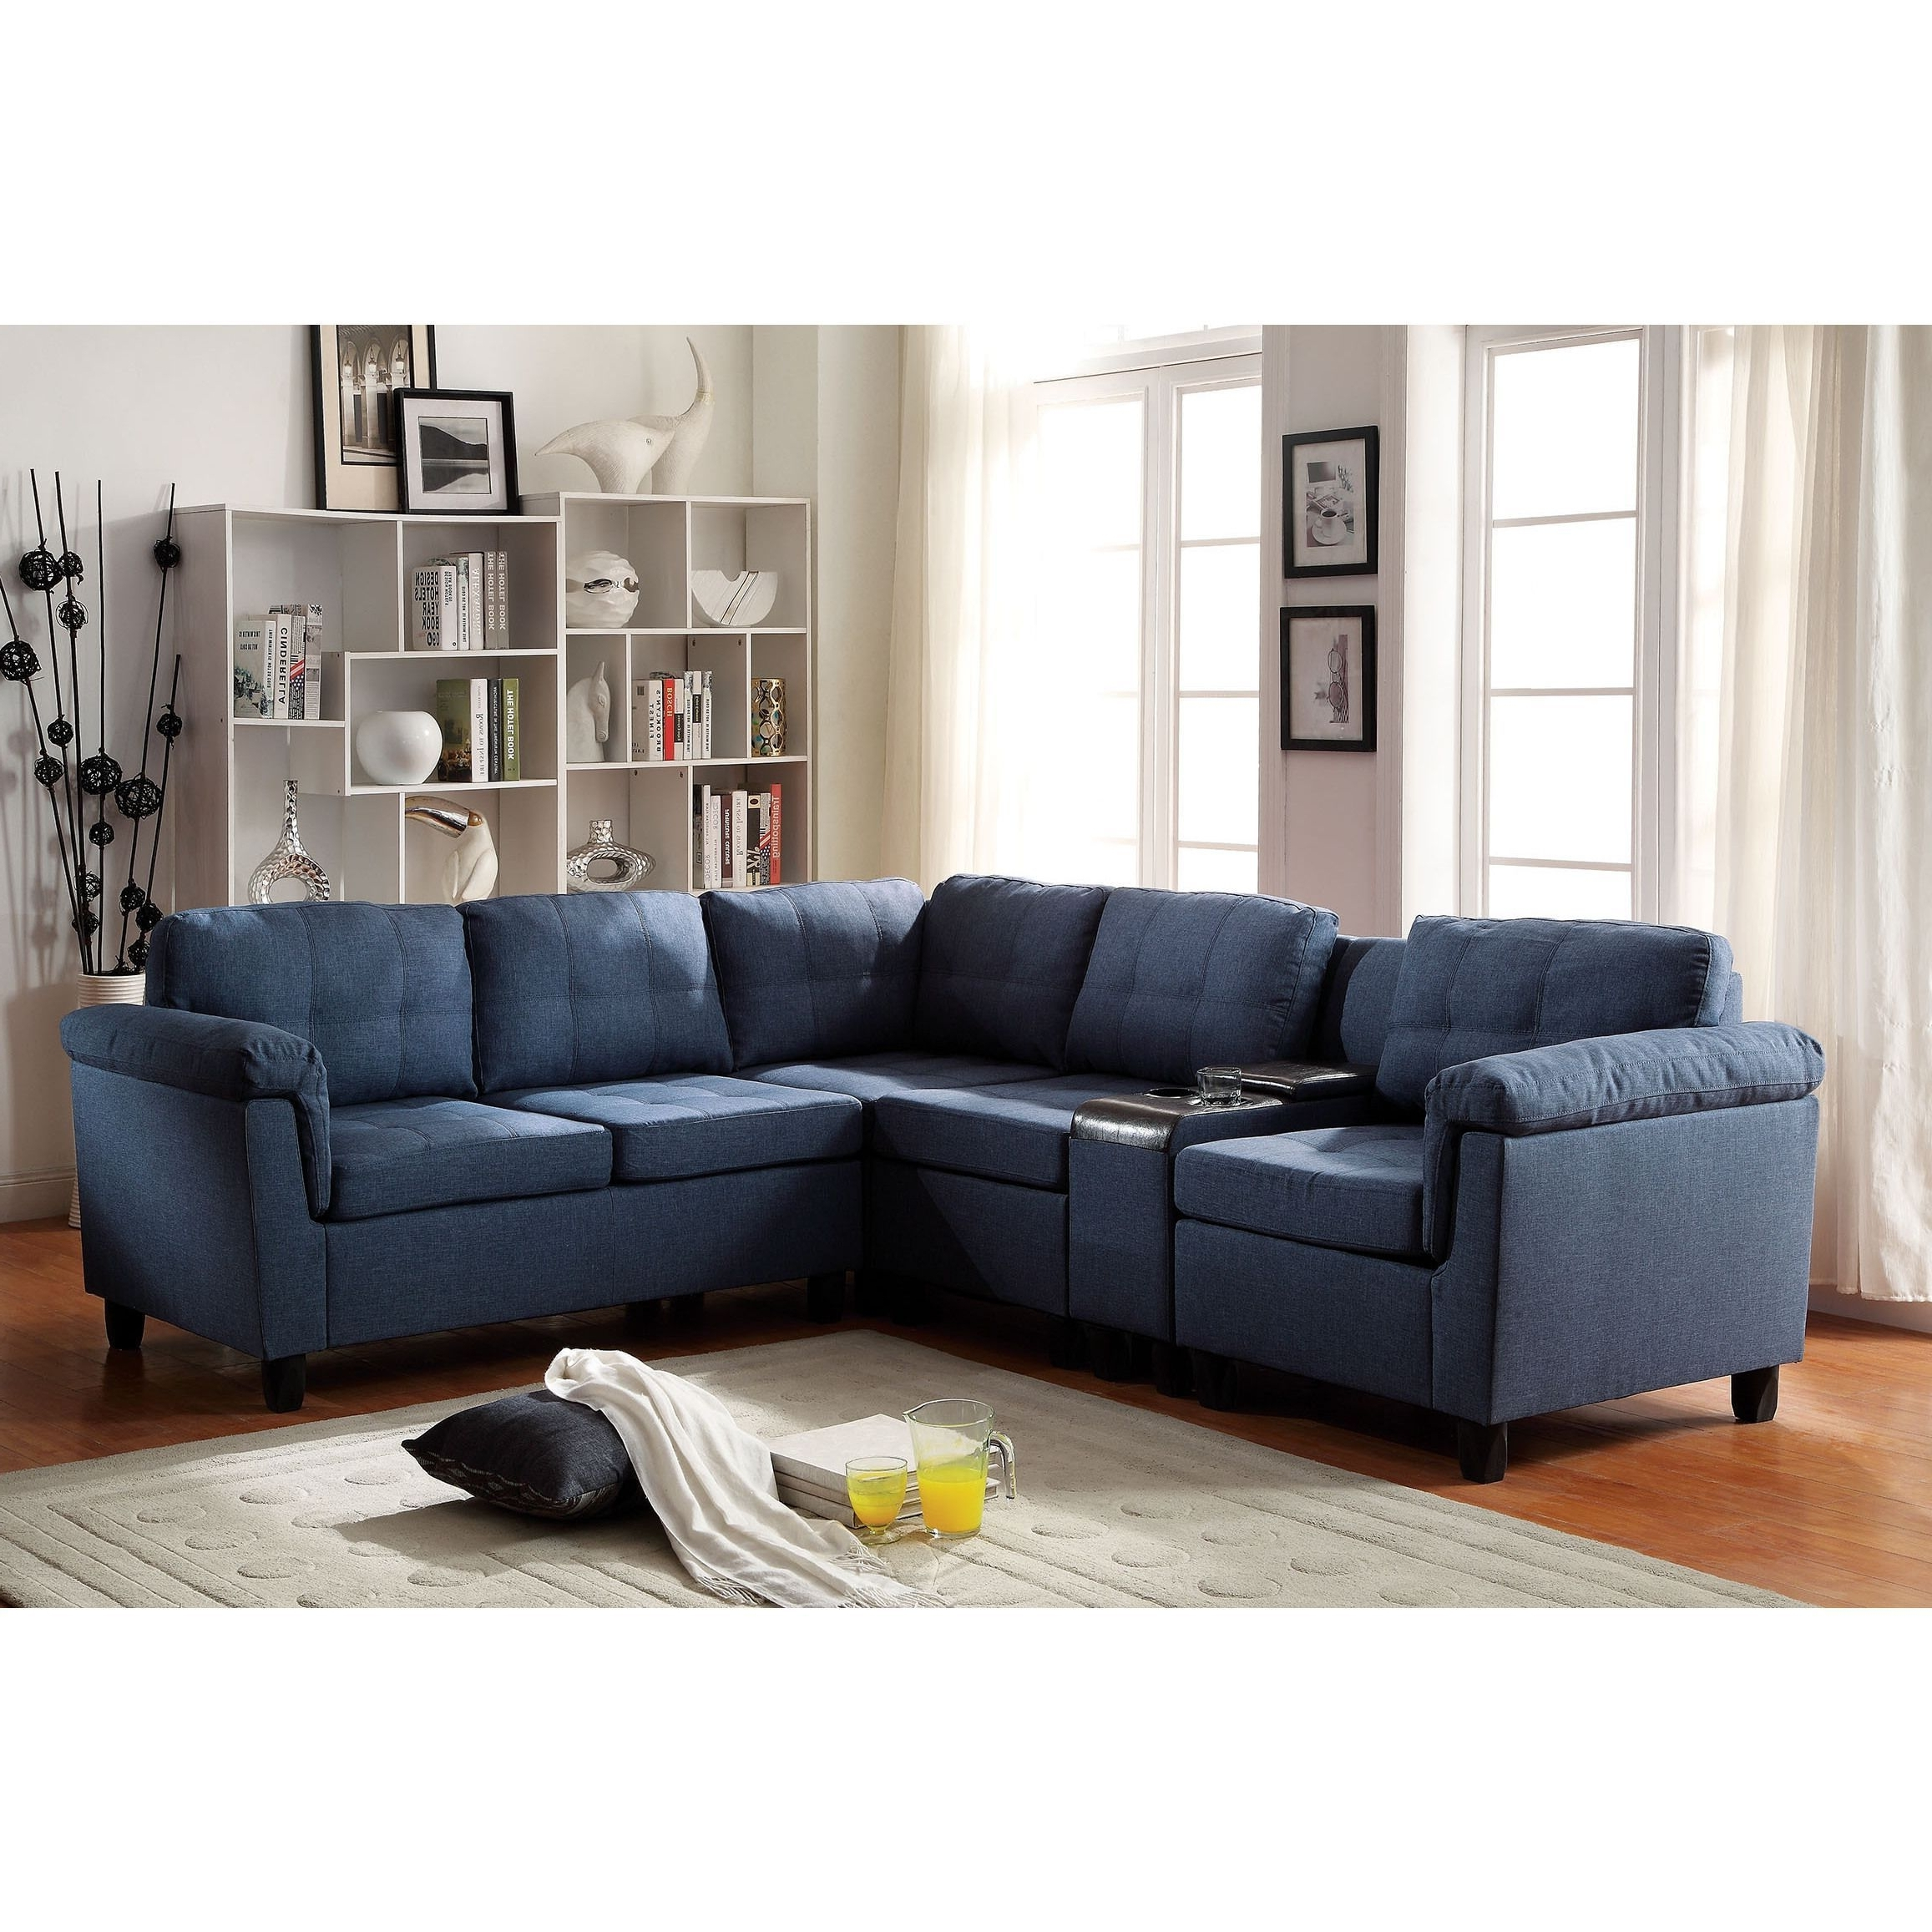 Cleavon Sectional Sofa With Console, Linen (Blue) (Foam Throughout Well Known Eau Claire Wi Sectional Sofas (View 4 of 15)